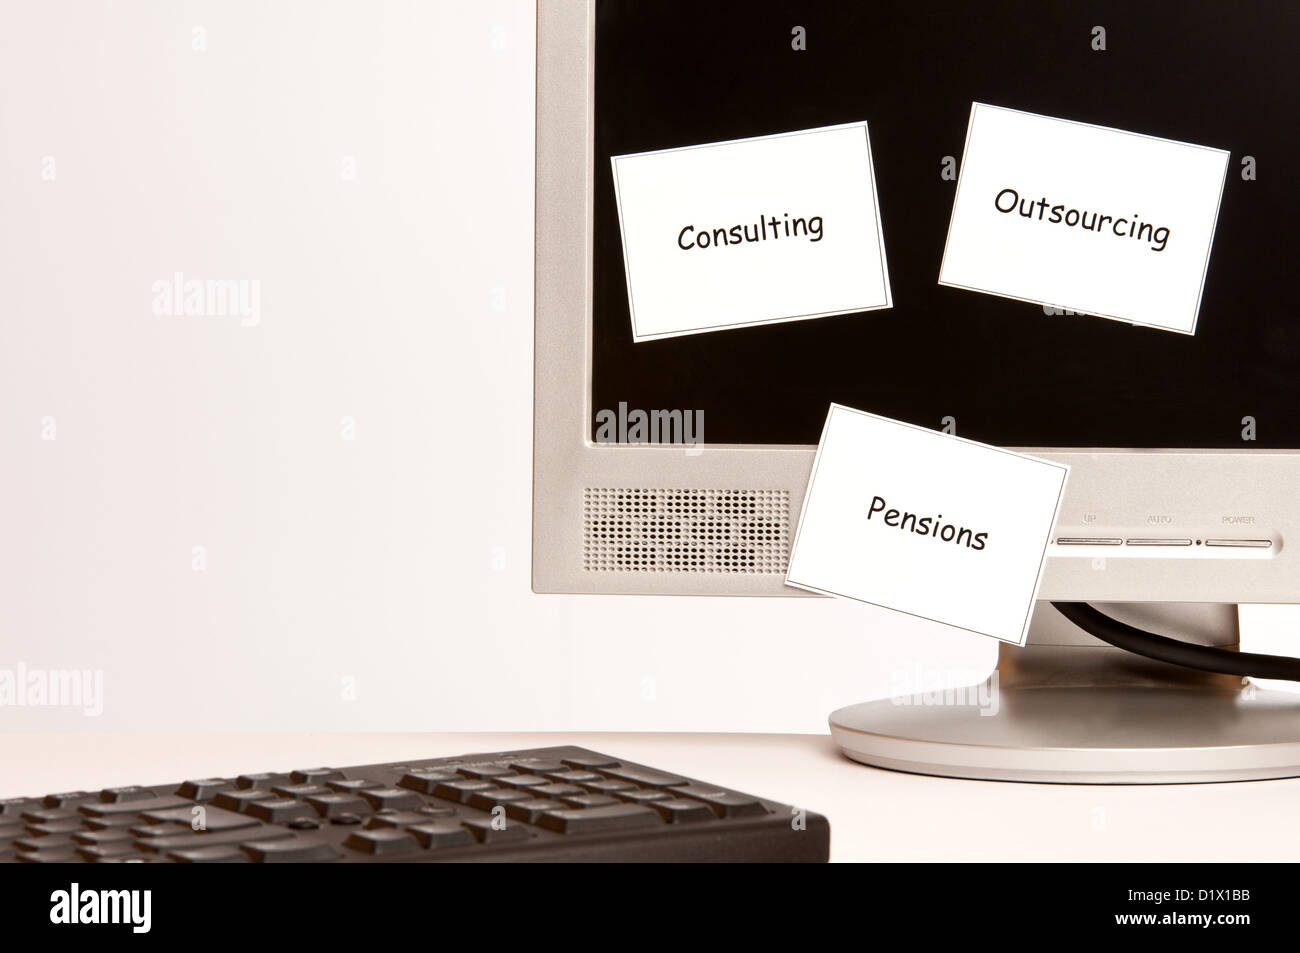 sticky notes on a computer monitor mentioning consulting outsourcing and pensions - Stock Image